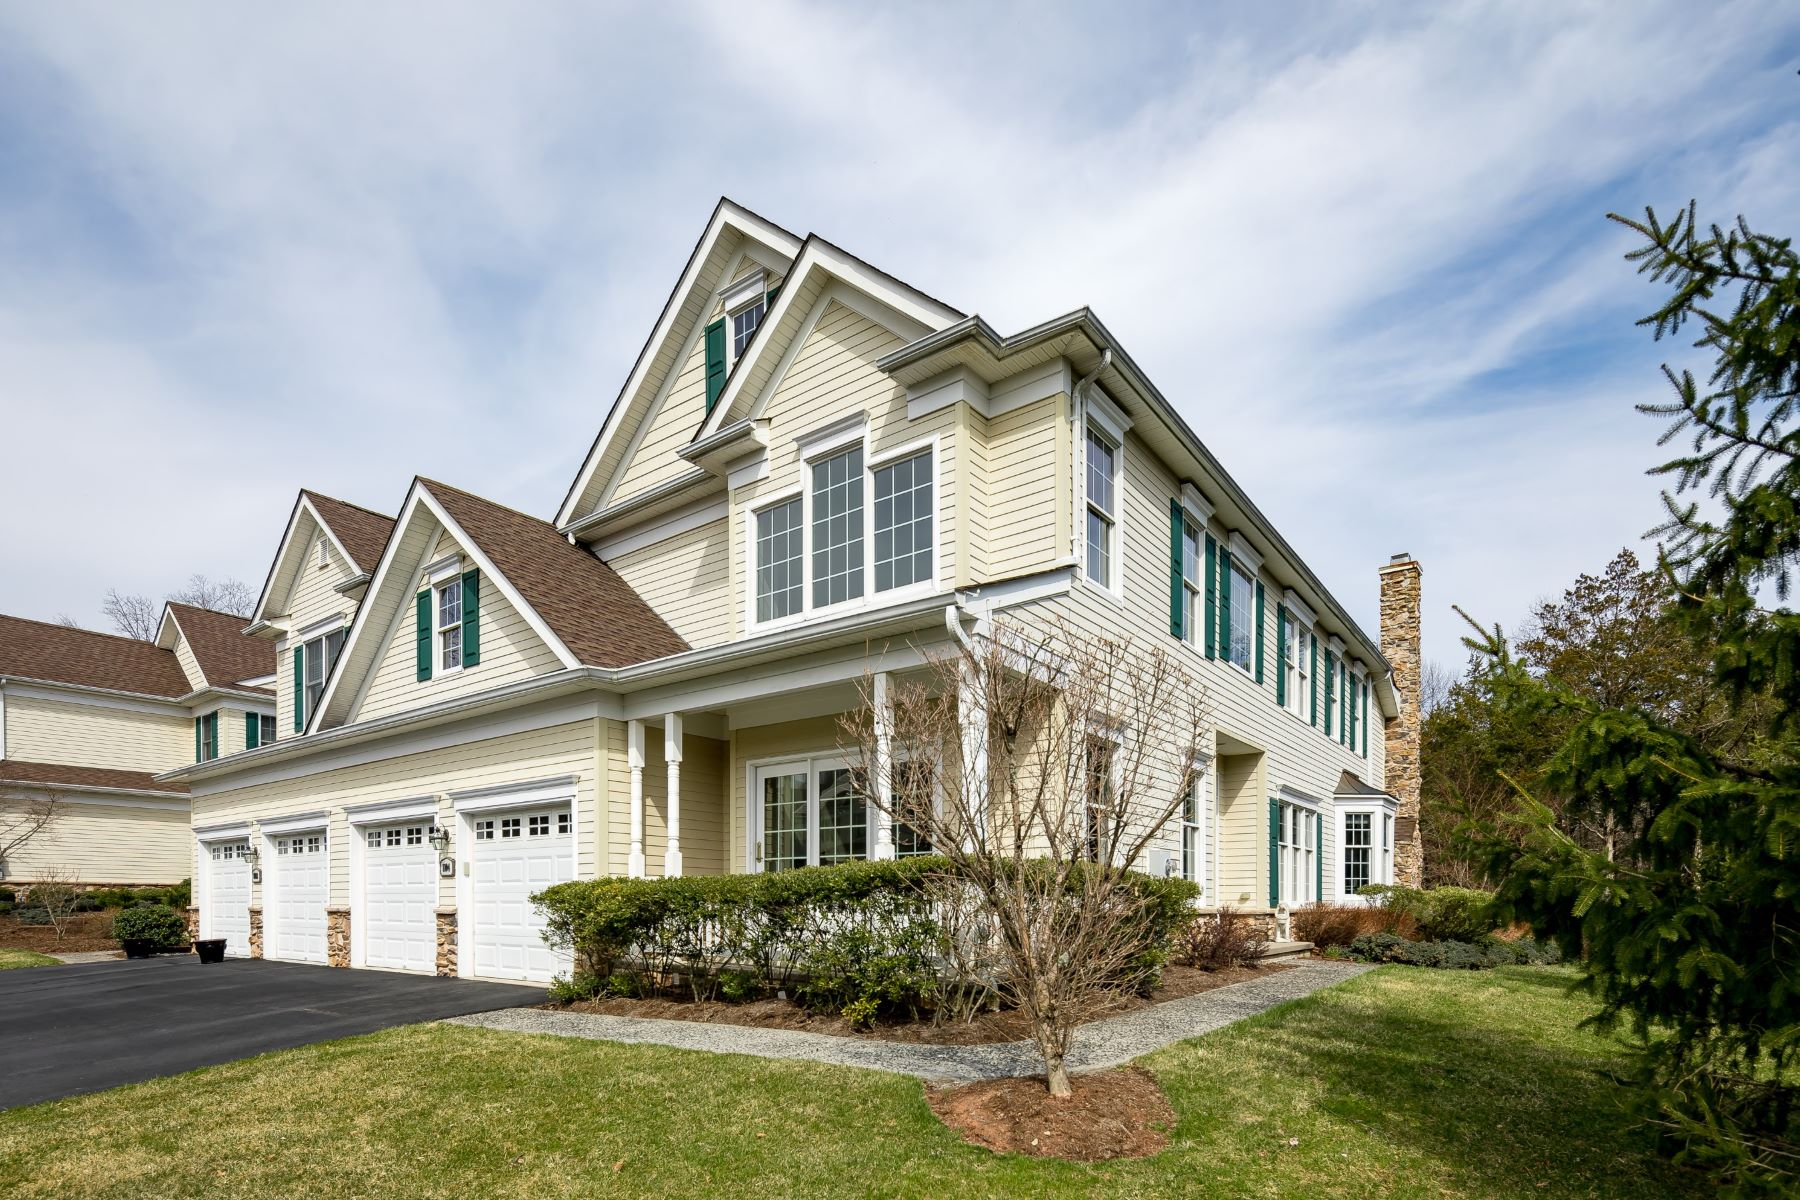 townhouses for Sale at Crossroads at Oldwick 1104 Farley Road Tewksbury Township, New Jersey 08889 United States